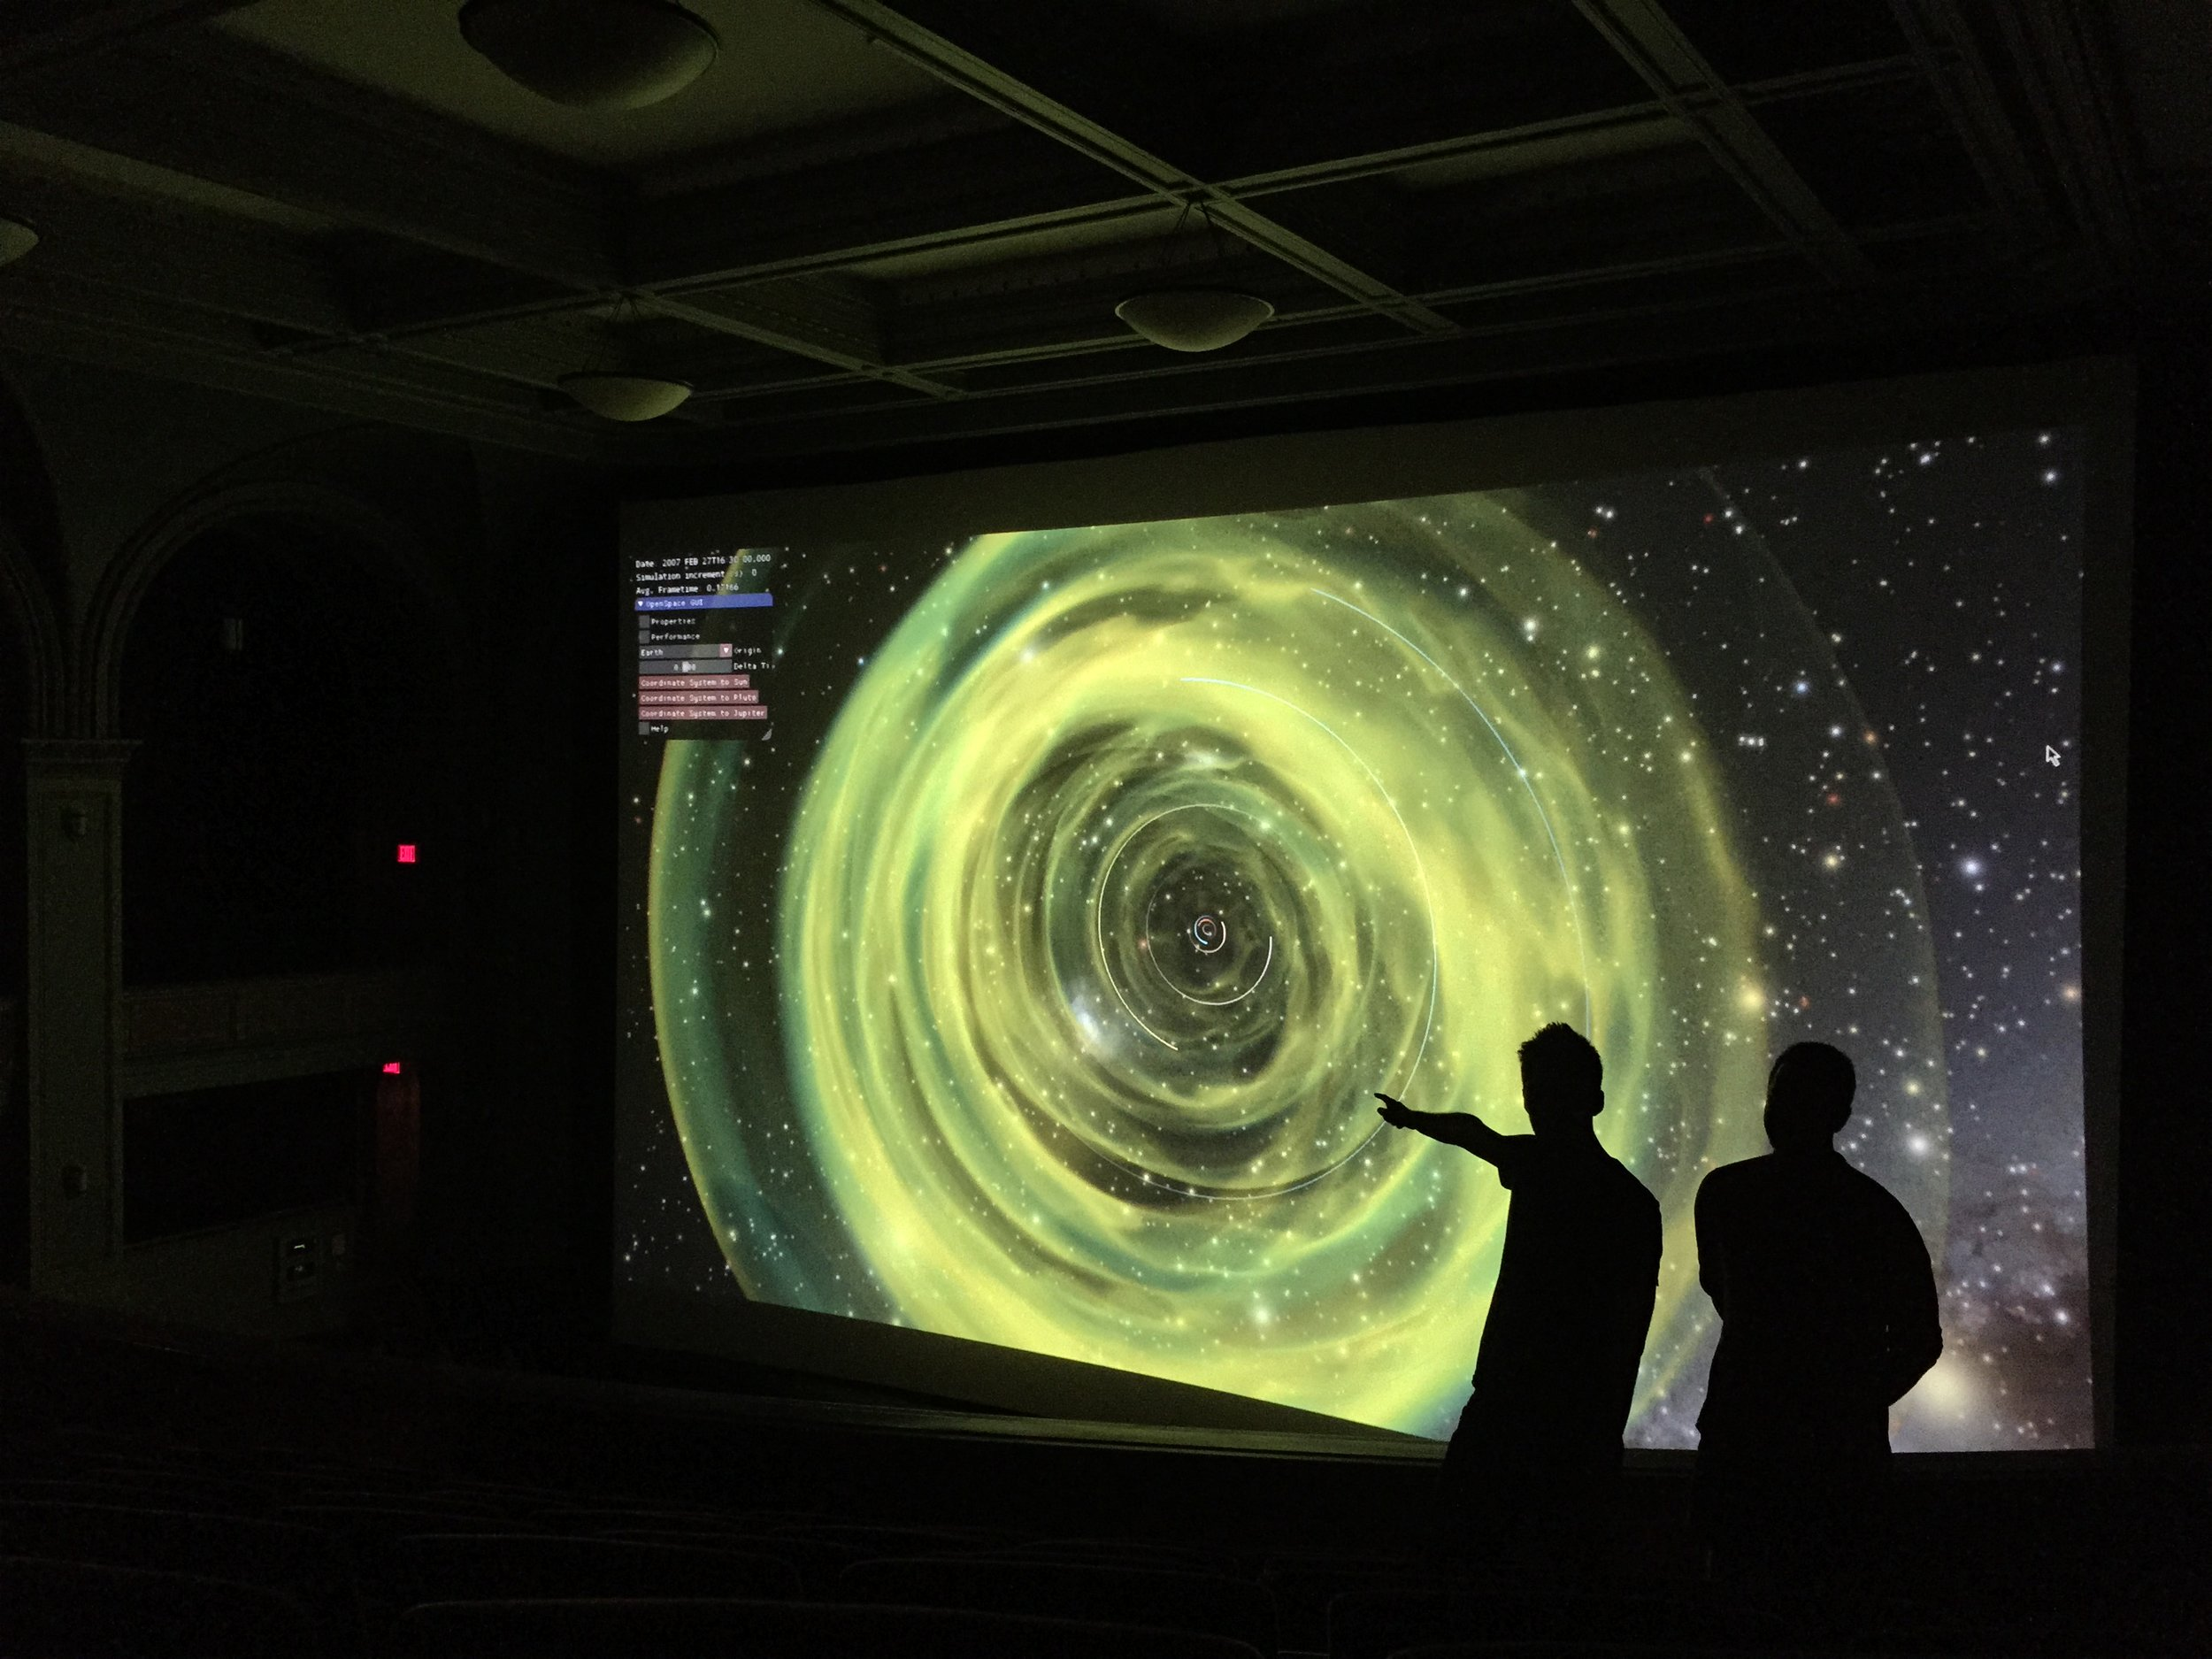 ENLIL Simulation in AMNH's LeFrak theater